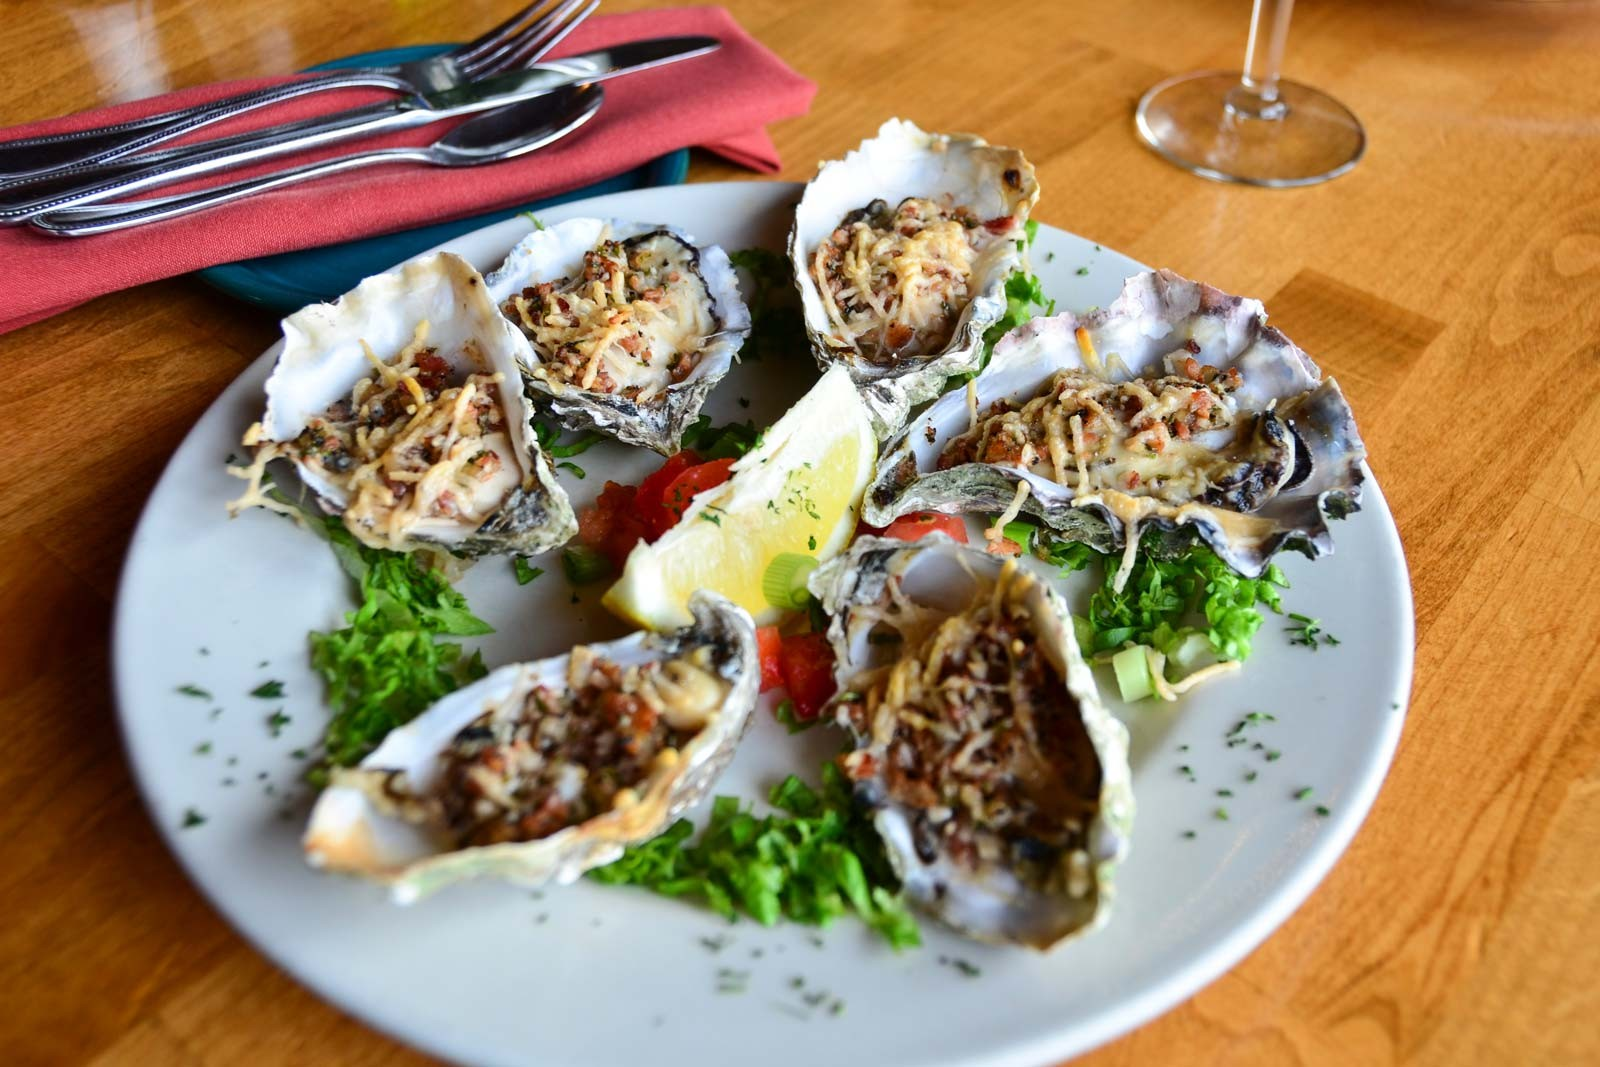 The fruits of the bay: oysters at Café Waterfront. - PHOTO BY DREW HYLAND